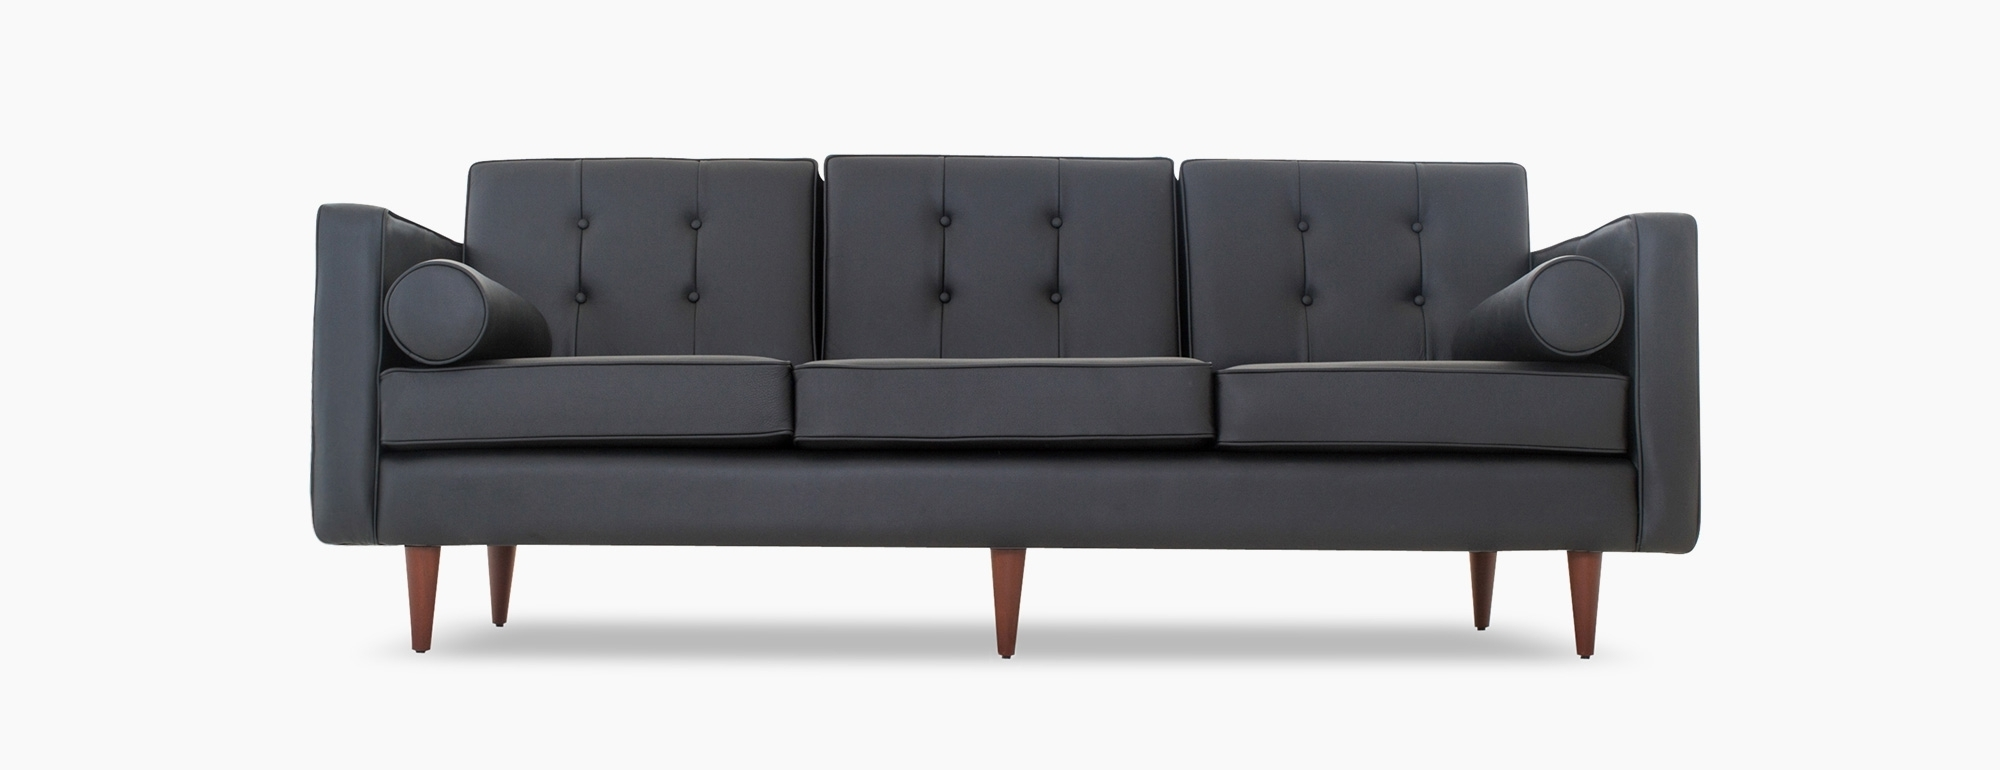 Braxton Sofas Intended For Most Current Braxton Leather Sofa Set • Leather Sofa (View 13 of 15)